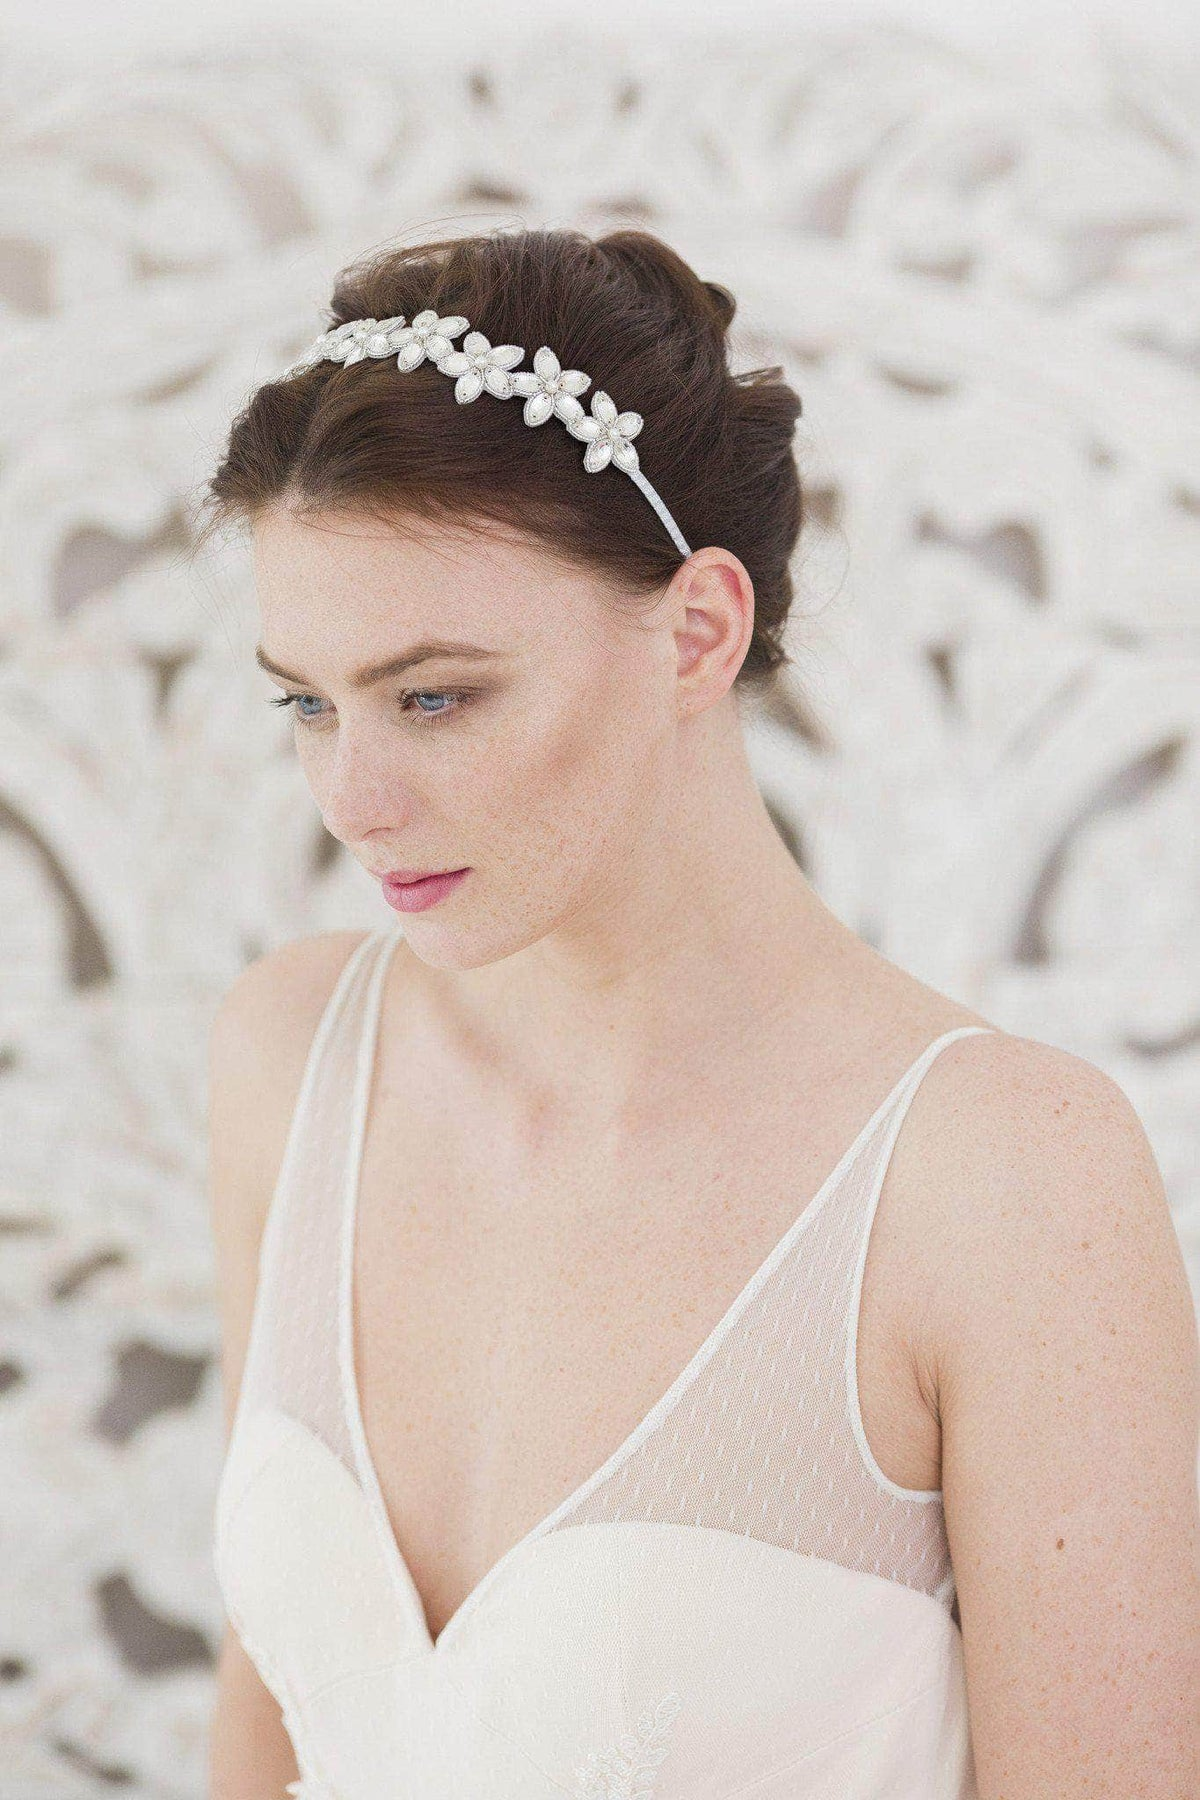 Wedding Headband Flower wedding headband in silver with crystals and pearls- 'Zoie'